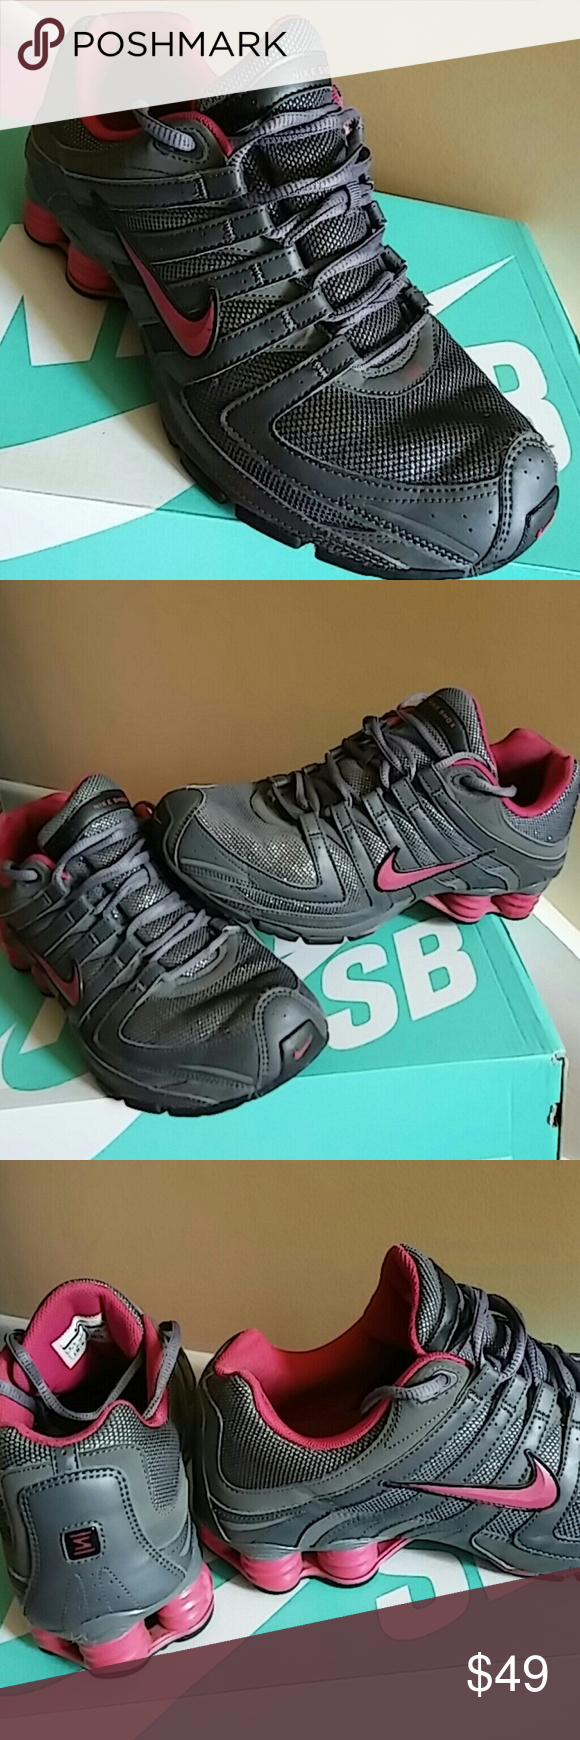 aa9cde0b0dcf Nike Shox WOMEN SIZE 9.5 and MEN 7.5 Lightly and gently used and in great  shape